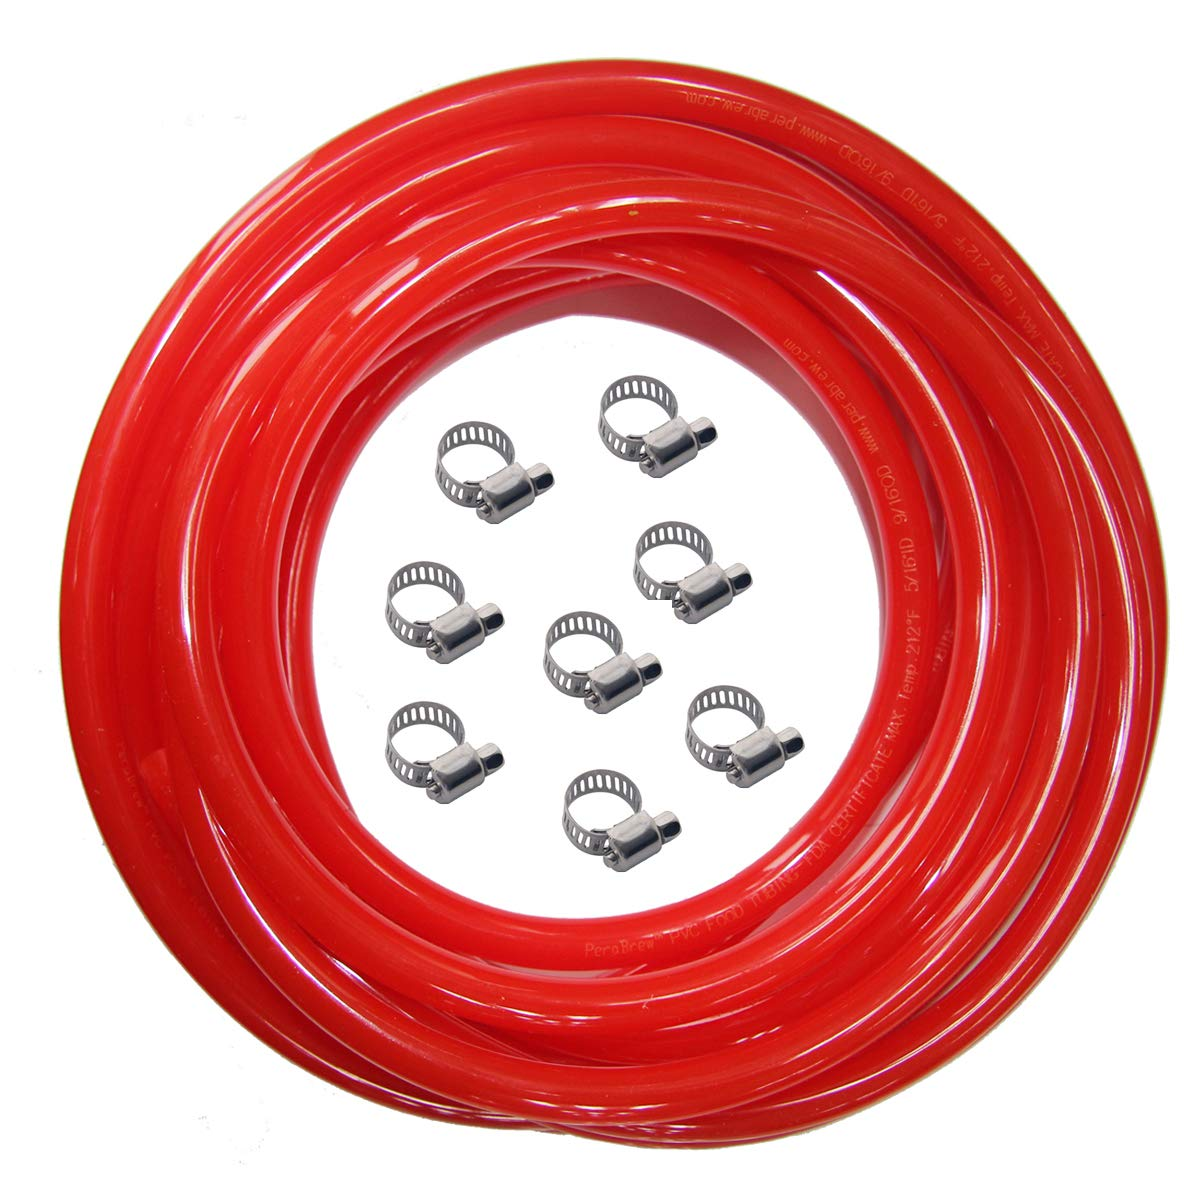 Red Gas Line Air Hose - 25ft Length CO2 Tubing Hose ID 5/16 inch OD 9/16 inch,Include 8 PCS Free Hose Clamps, Used for Draft Beer Home Brewing by LUCKEG